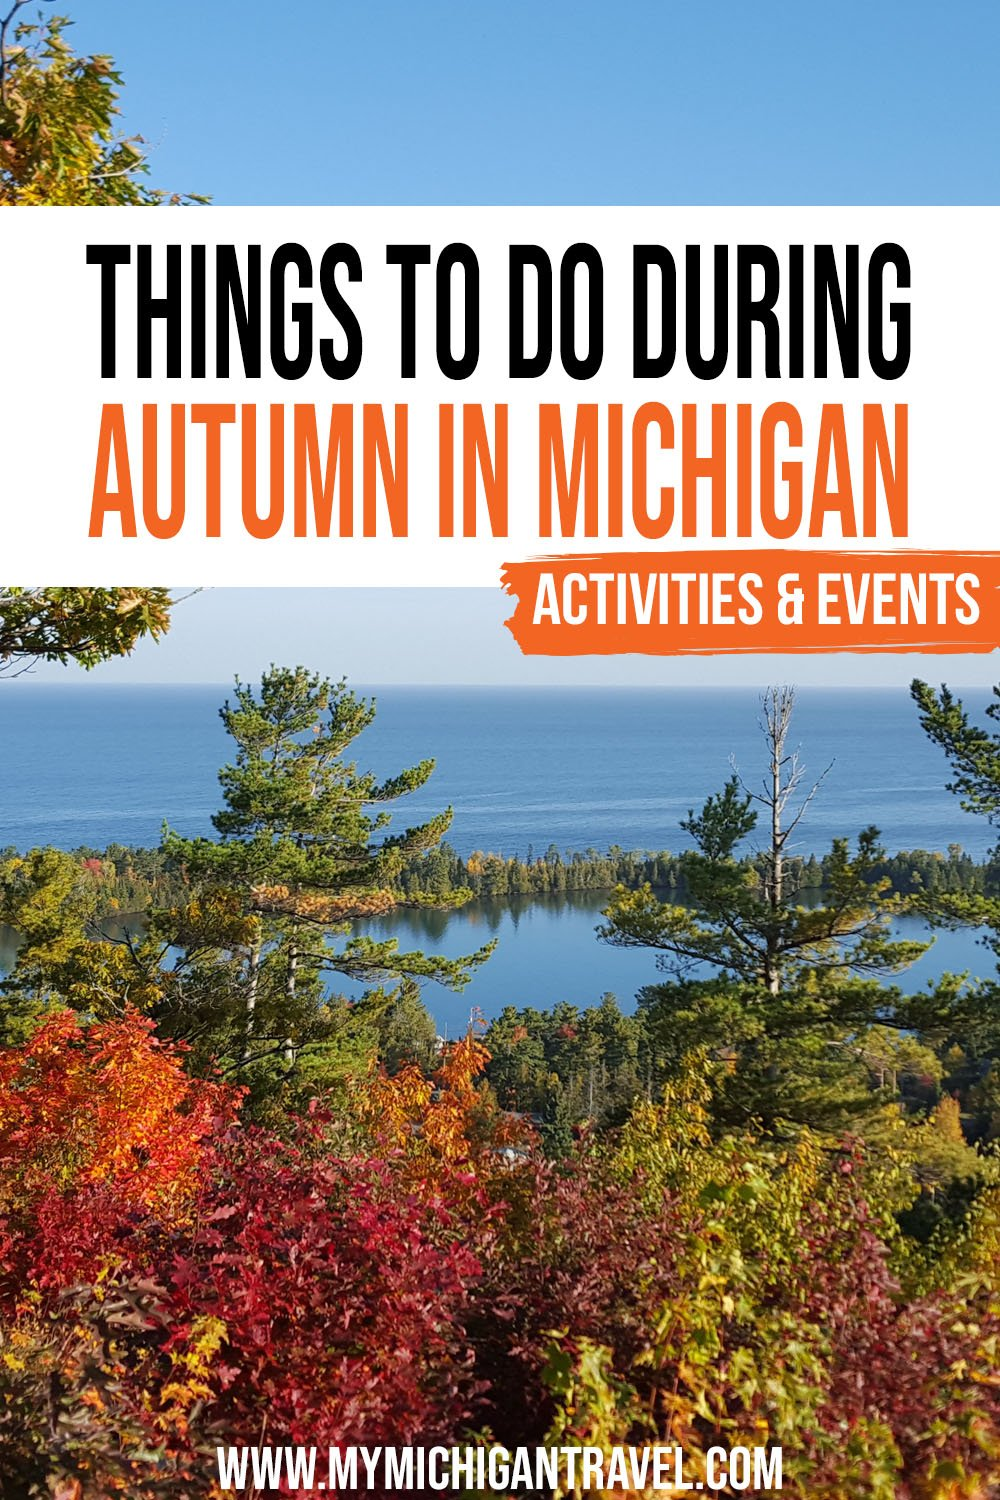 """Photo of colorful fall foliage with a large lake in the background and text overlay reading """"Things to do during fall in Michigan - events & activities"""""""